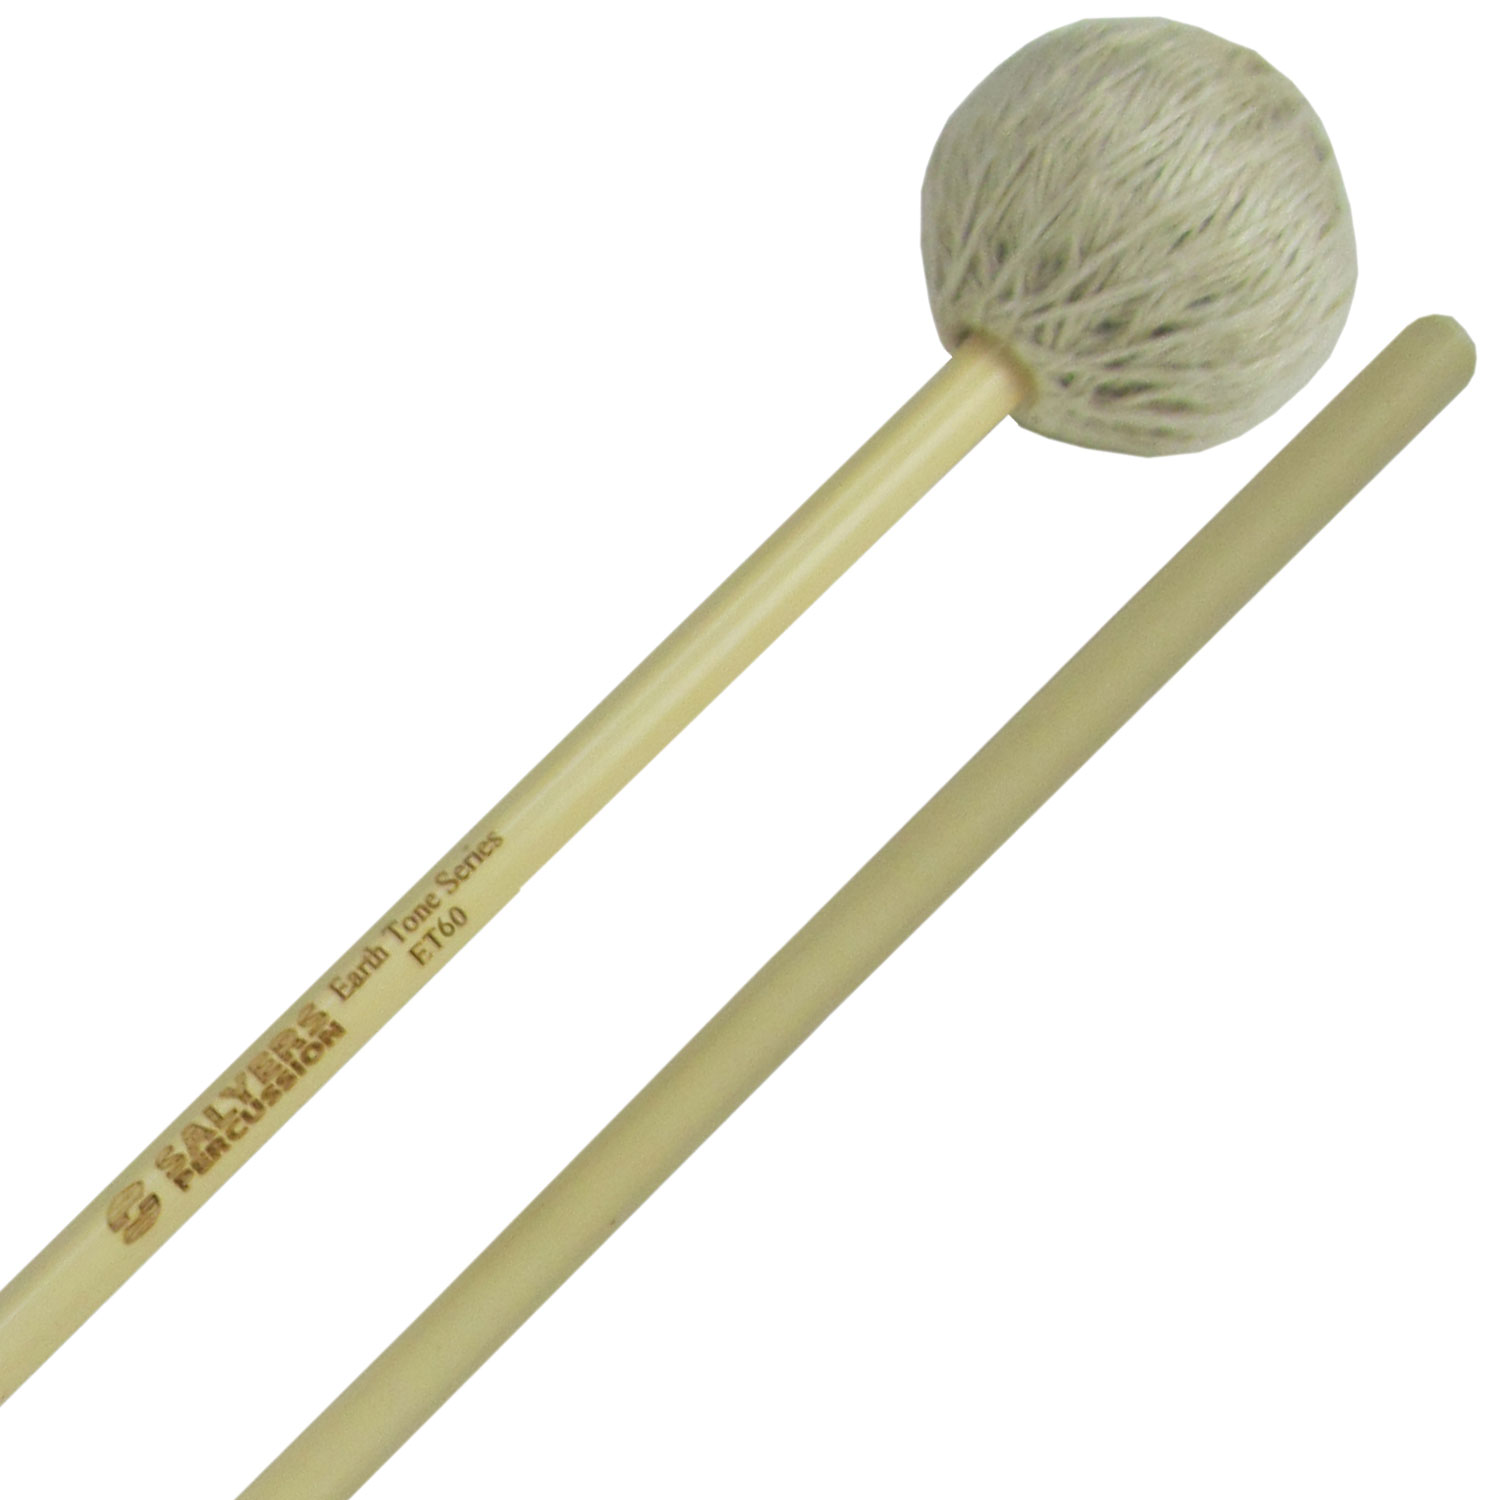 Salyers Percussion Earth Tone Medium Soft Vibraphone/Marimba Mallets